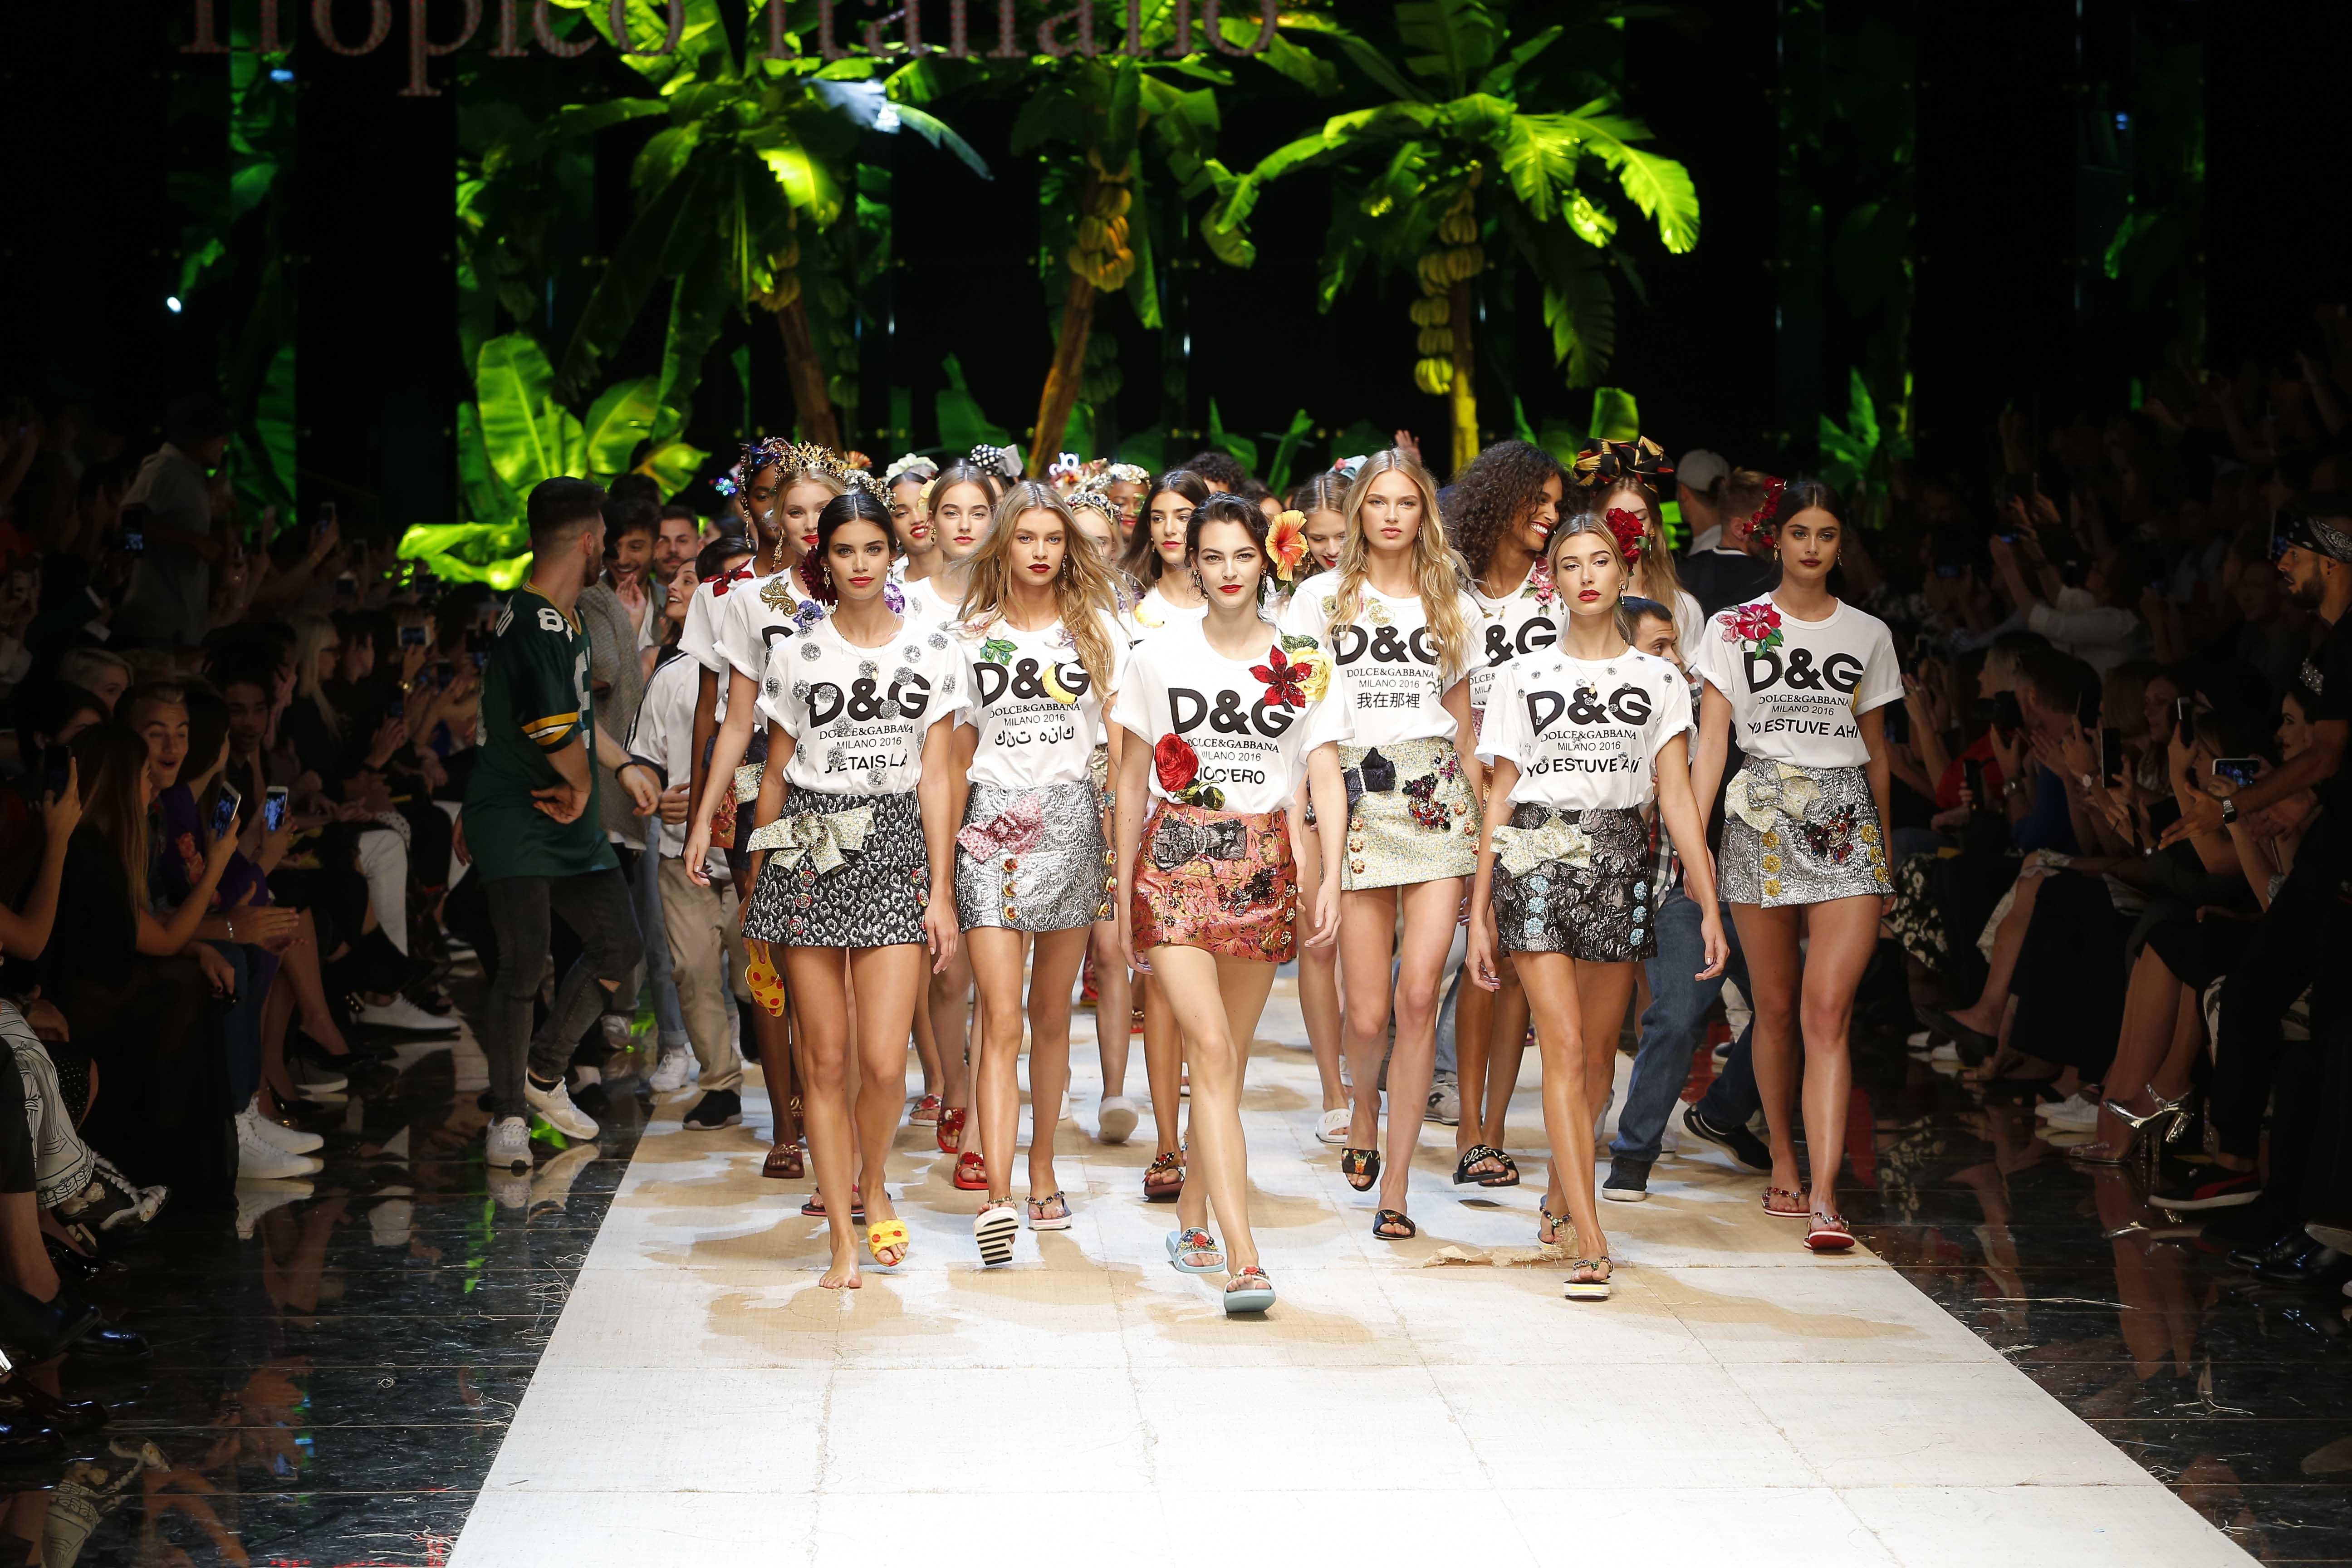 Dolce Gabbana uses Fake Logos as Inspiration for new Iconic Tees